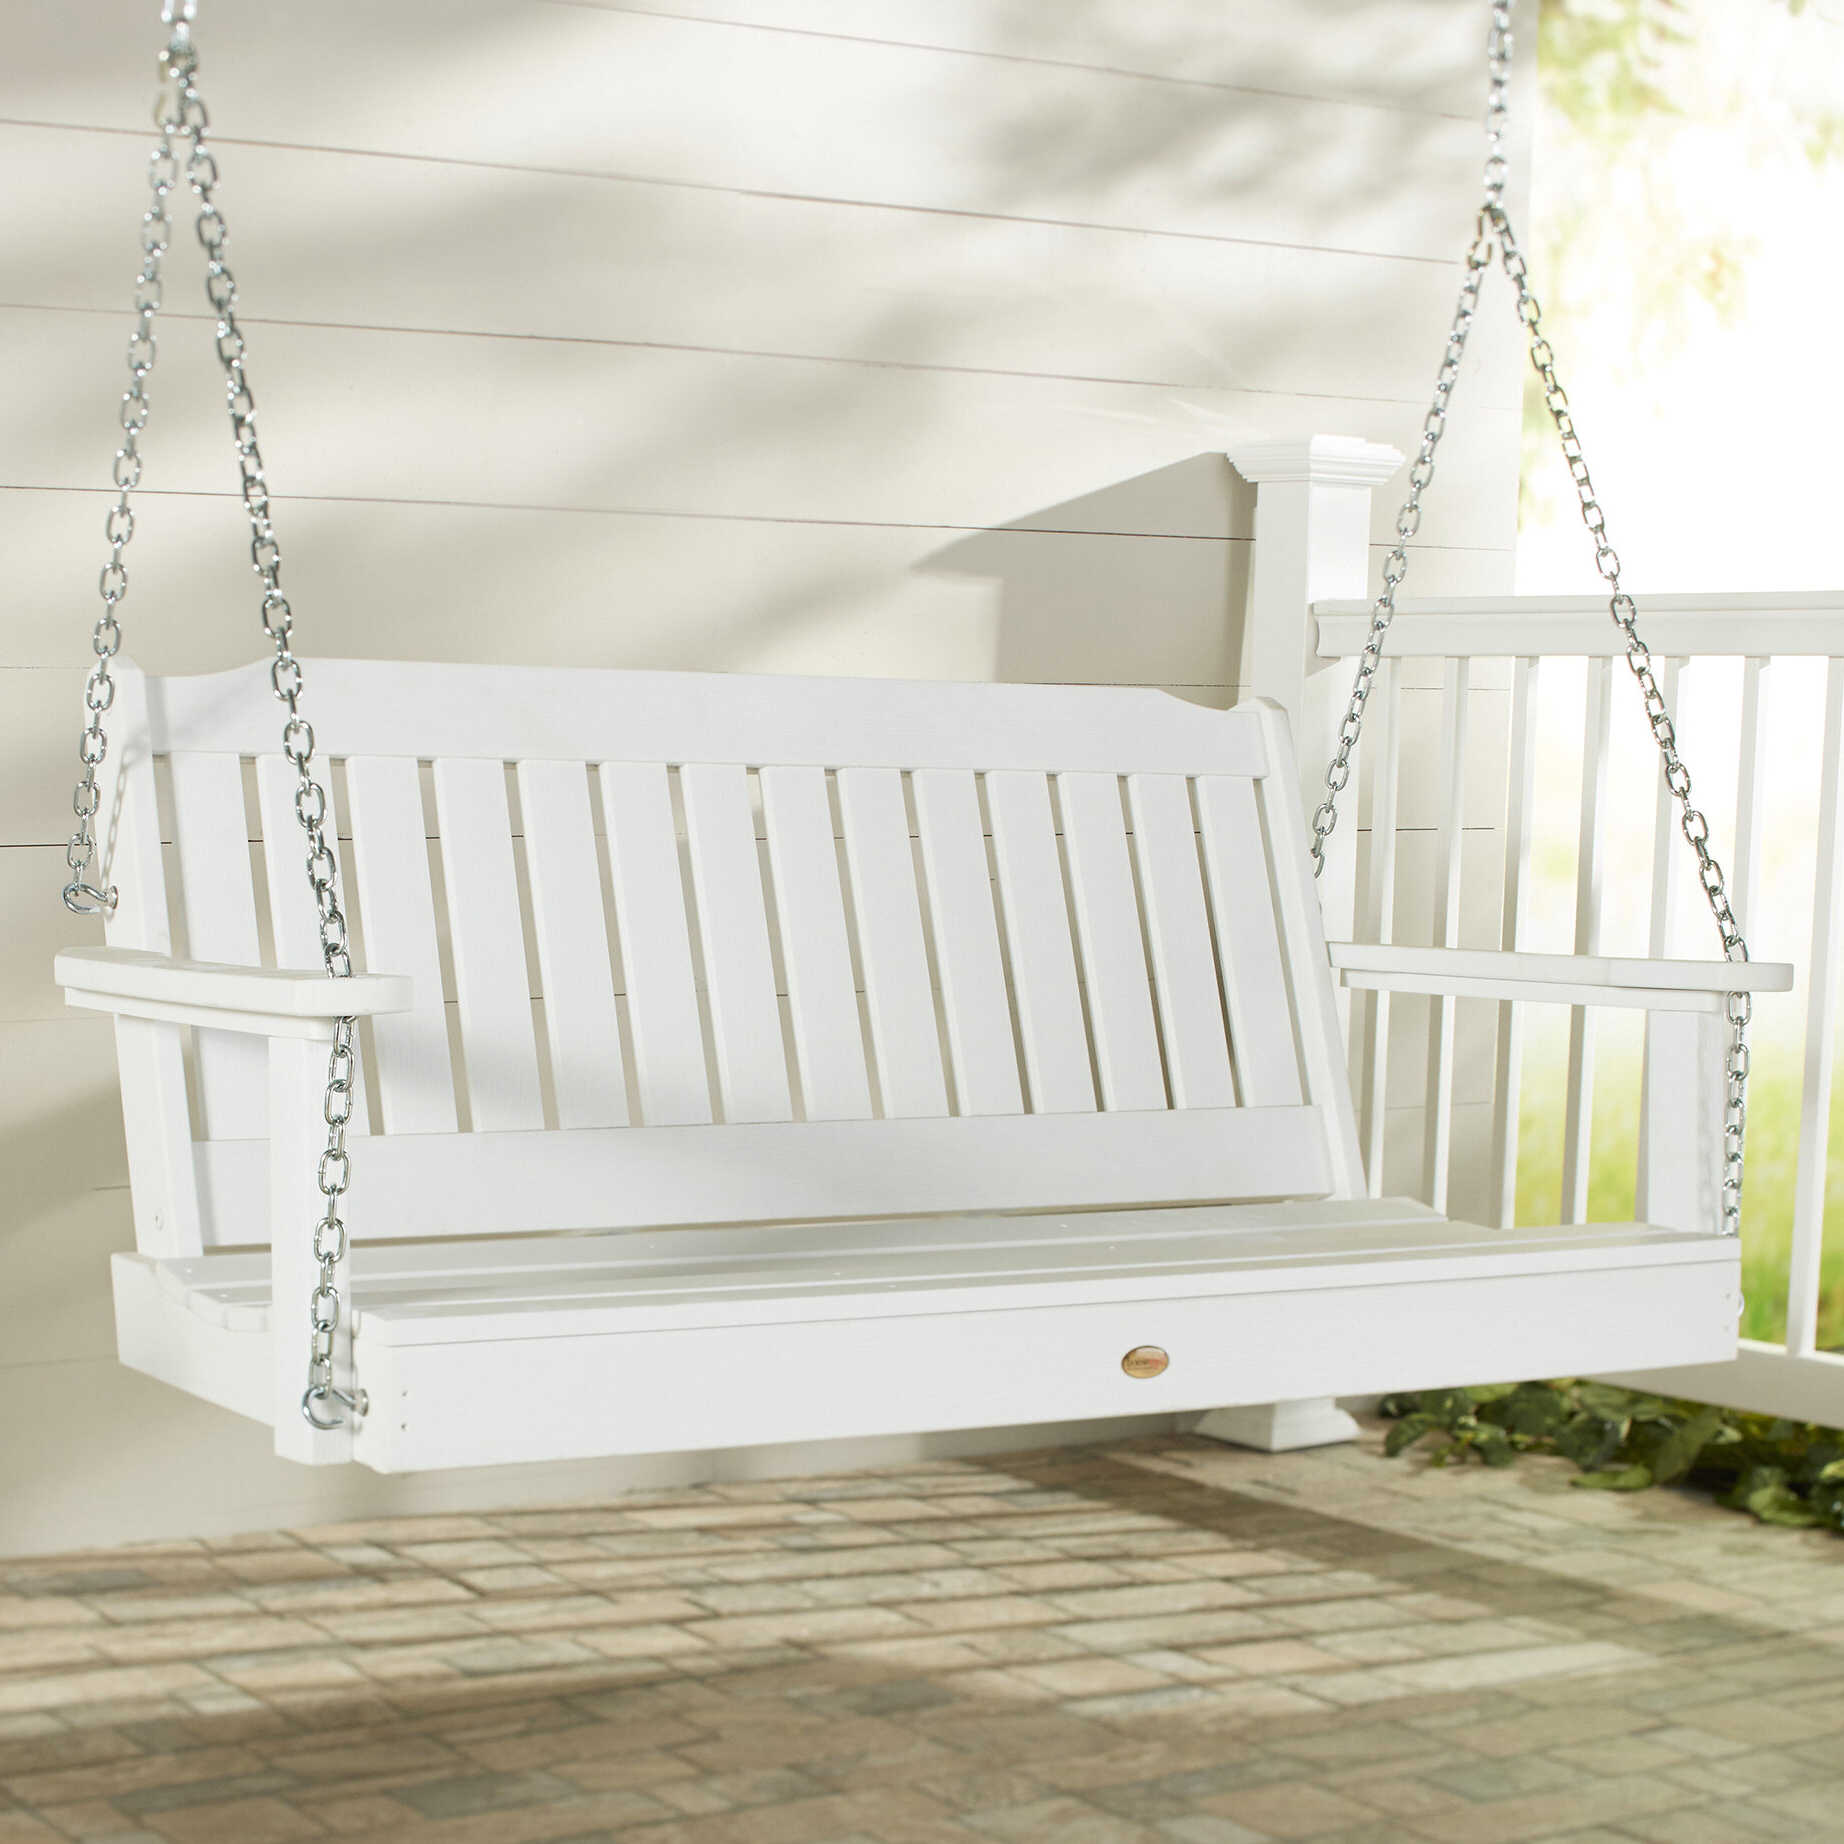 Trendy Fordyce Porch Swings Intended For Amelia Porch Swing (View 14 of 25)